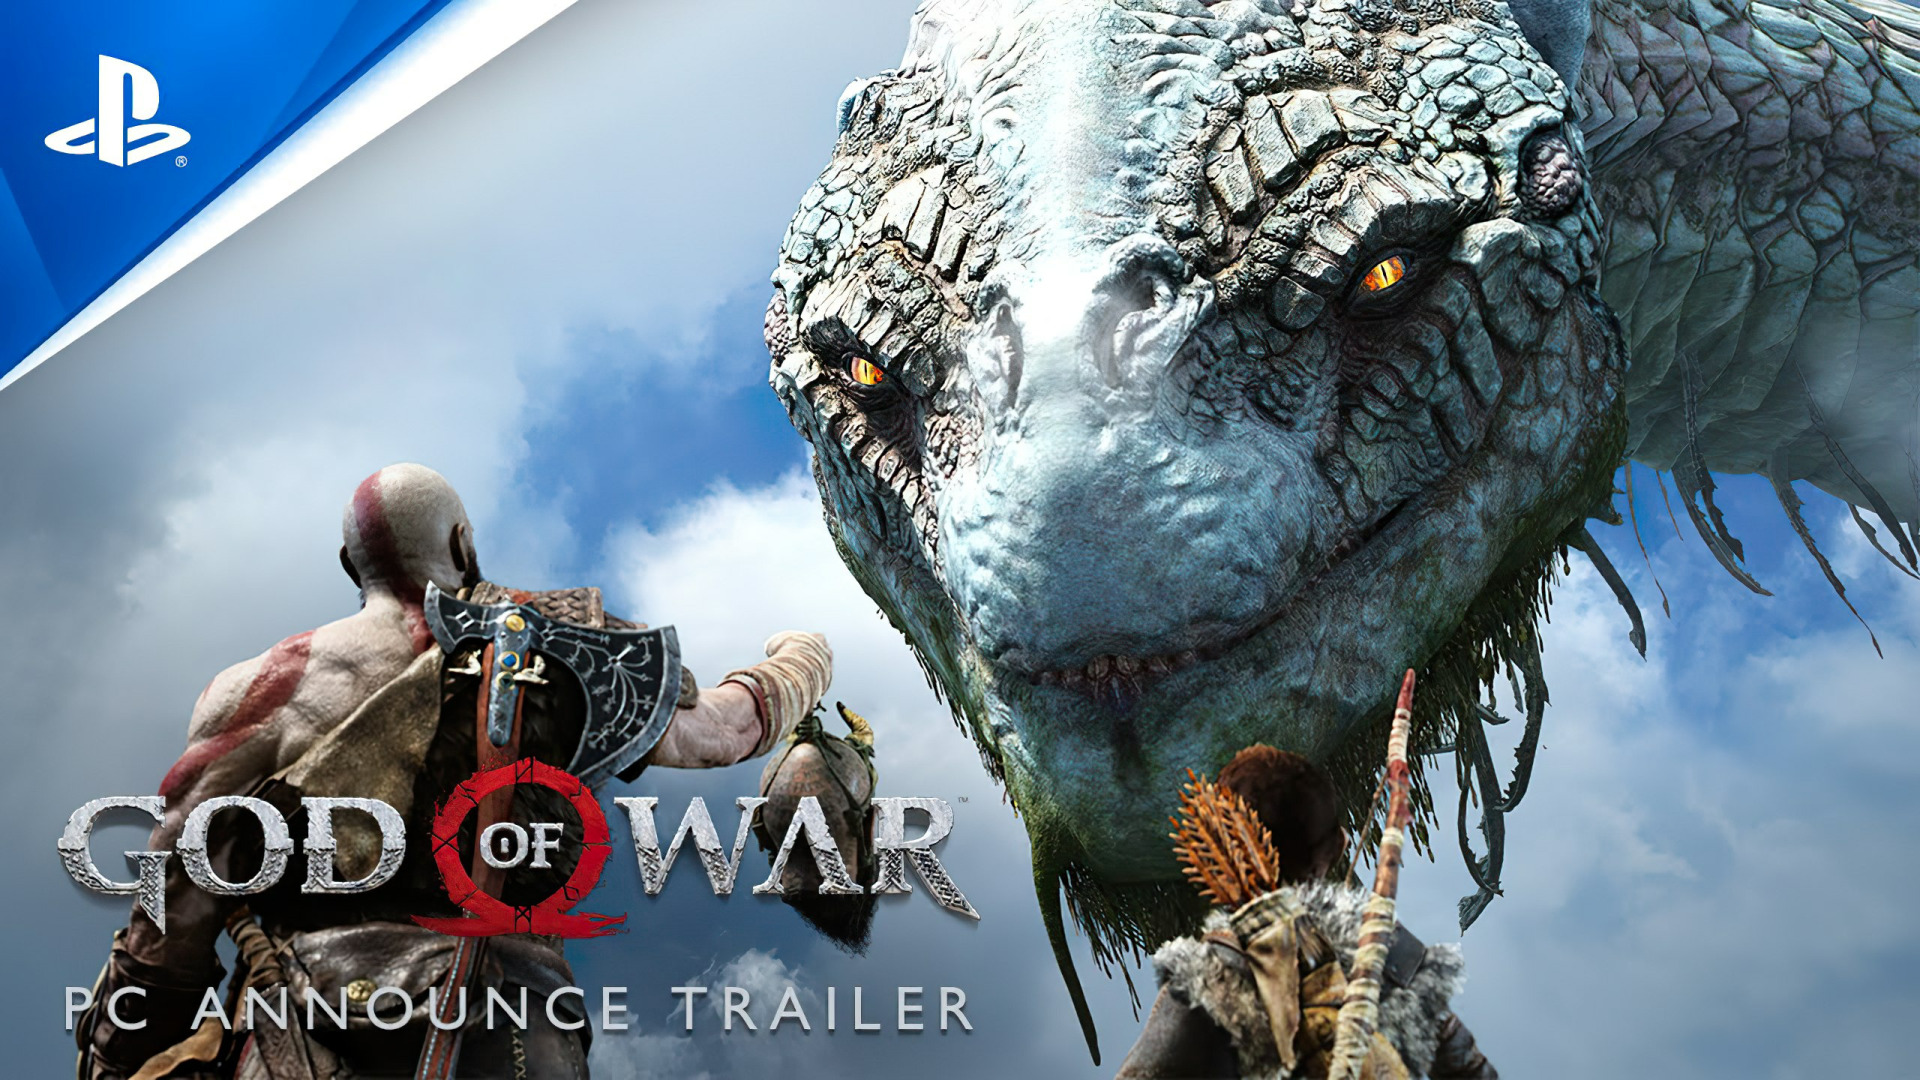 Trailer, Sony, Pc, Playstation, PlayStation 4, PS4, Sony PlayStation 4, actionspiel, God Of War